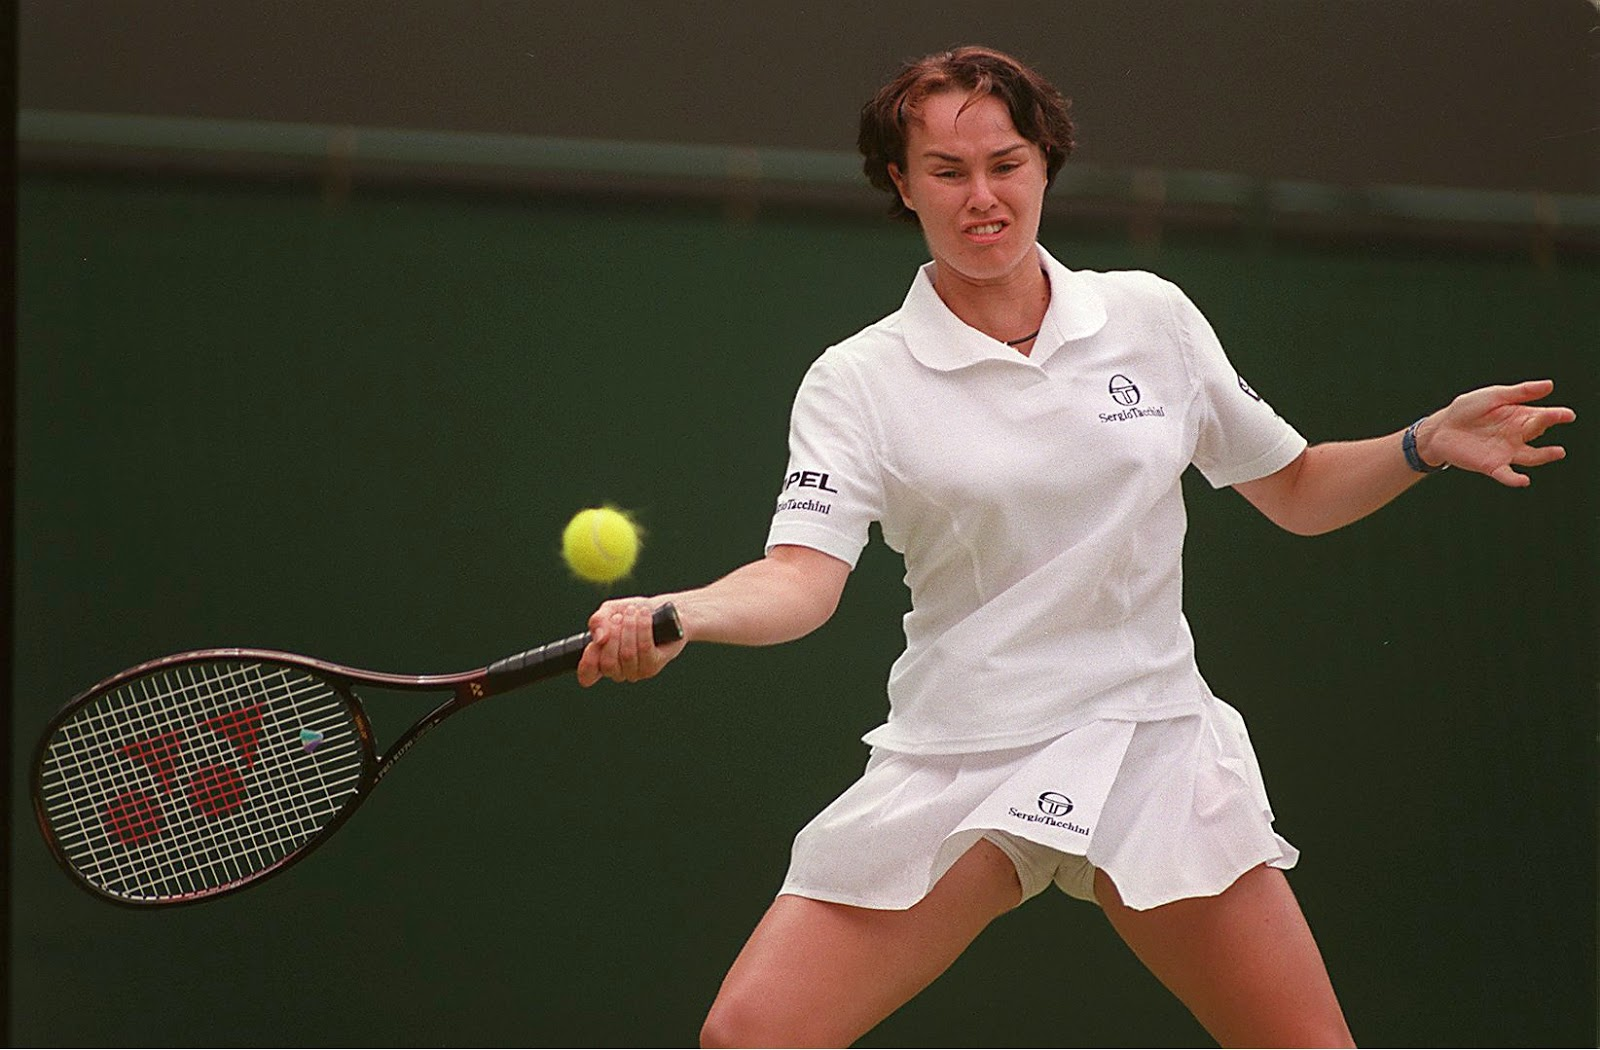 Simply matchless martina hingis upskirt free opinion, lie